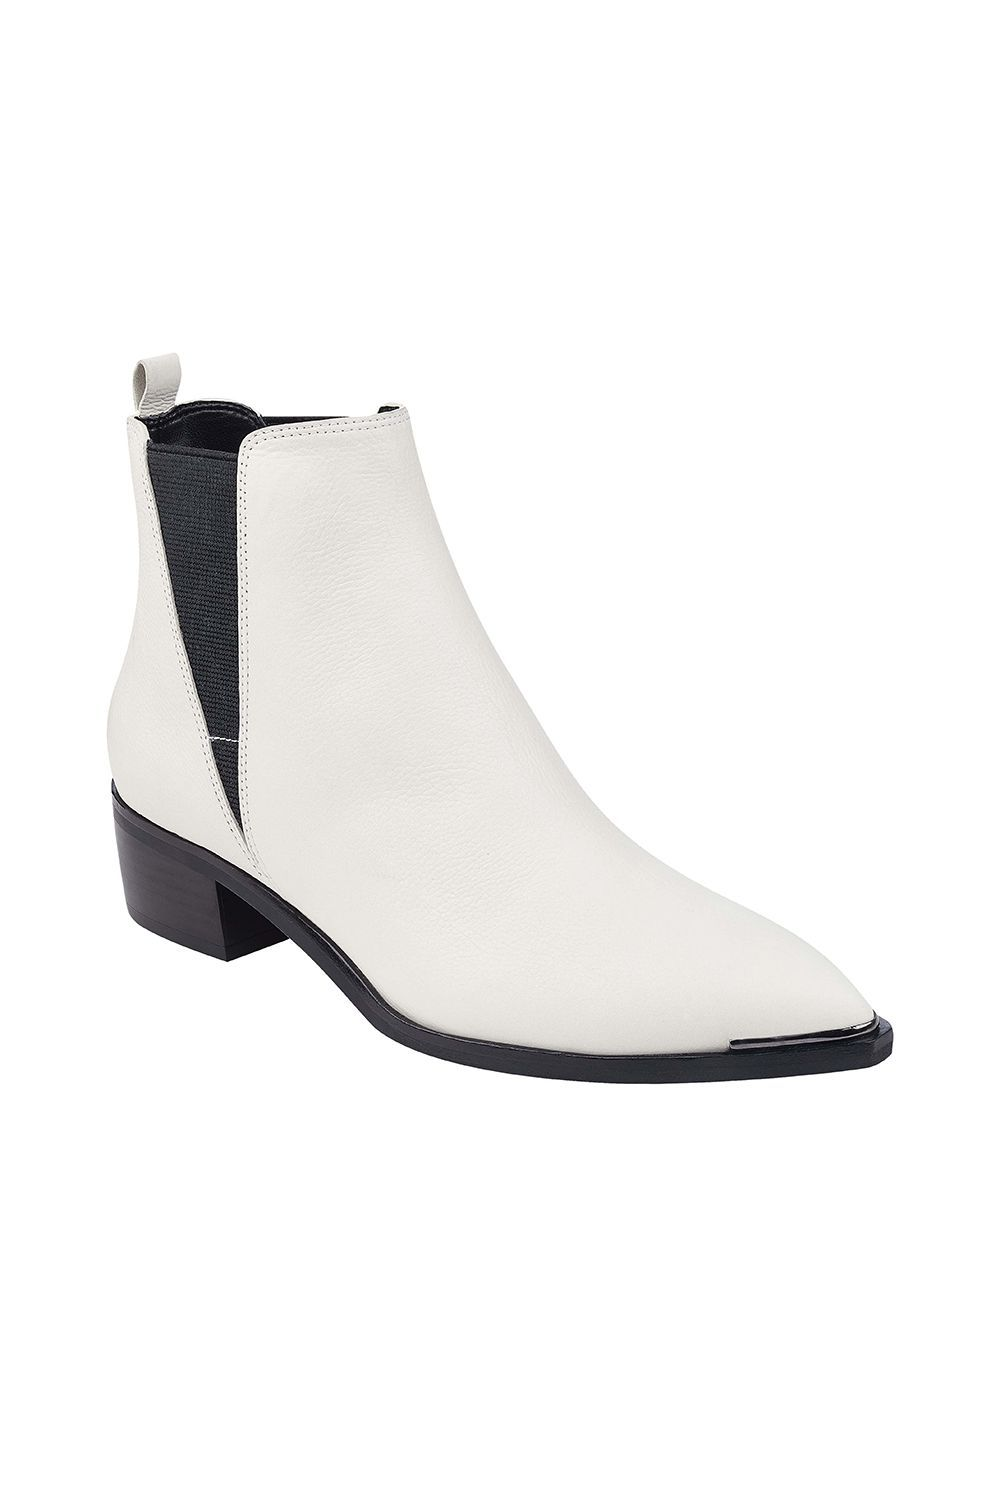 Discount sexy boot shoes platform effective?